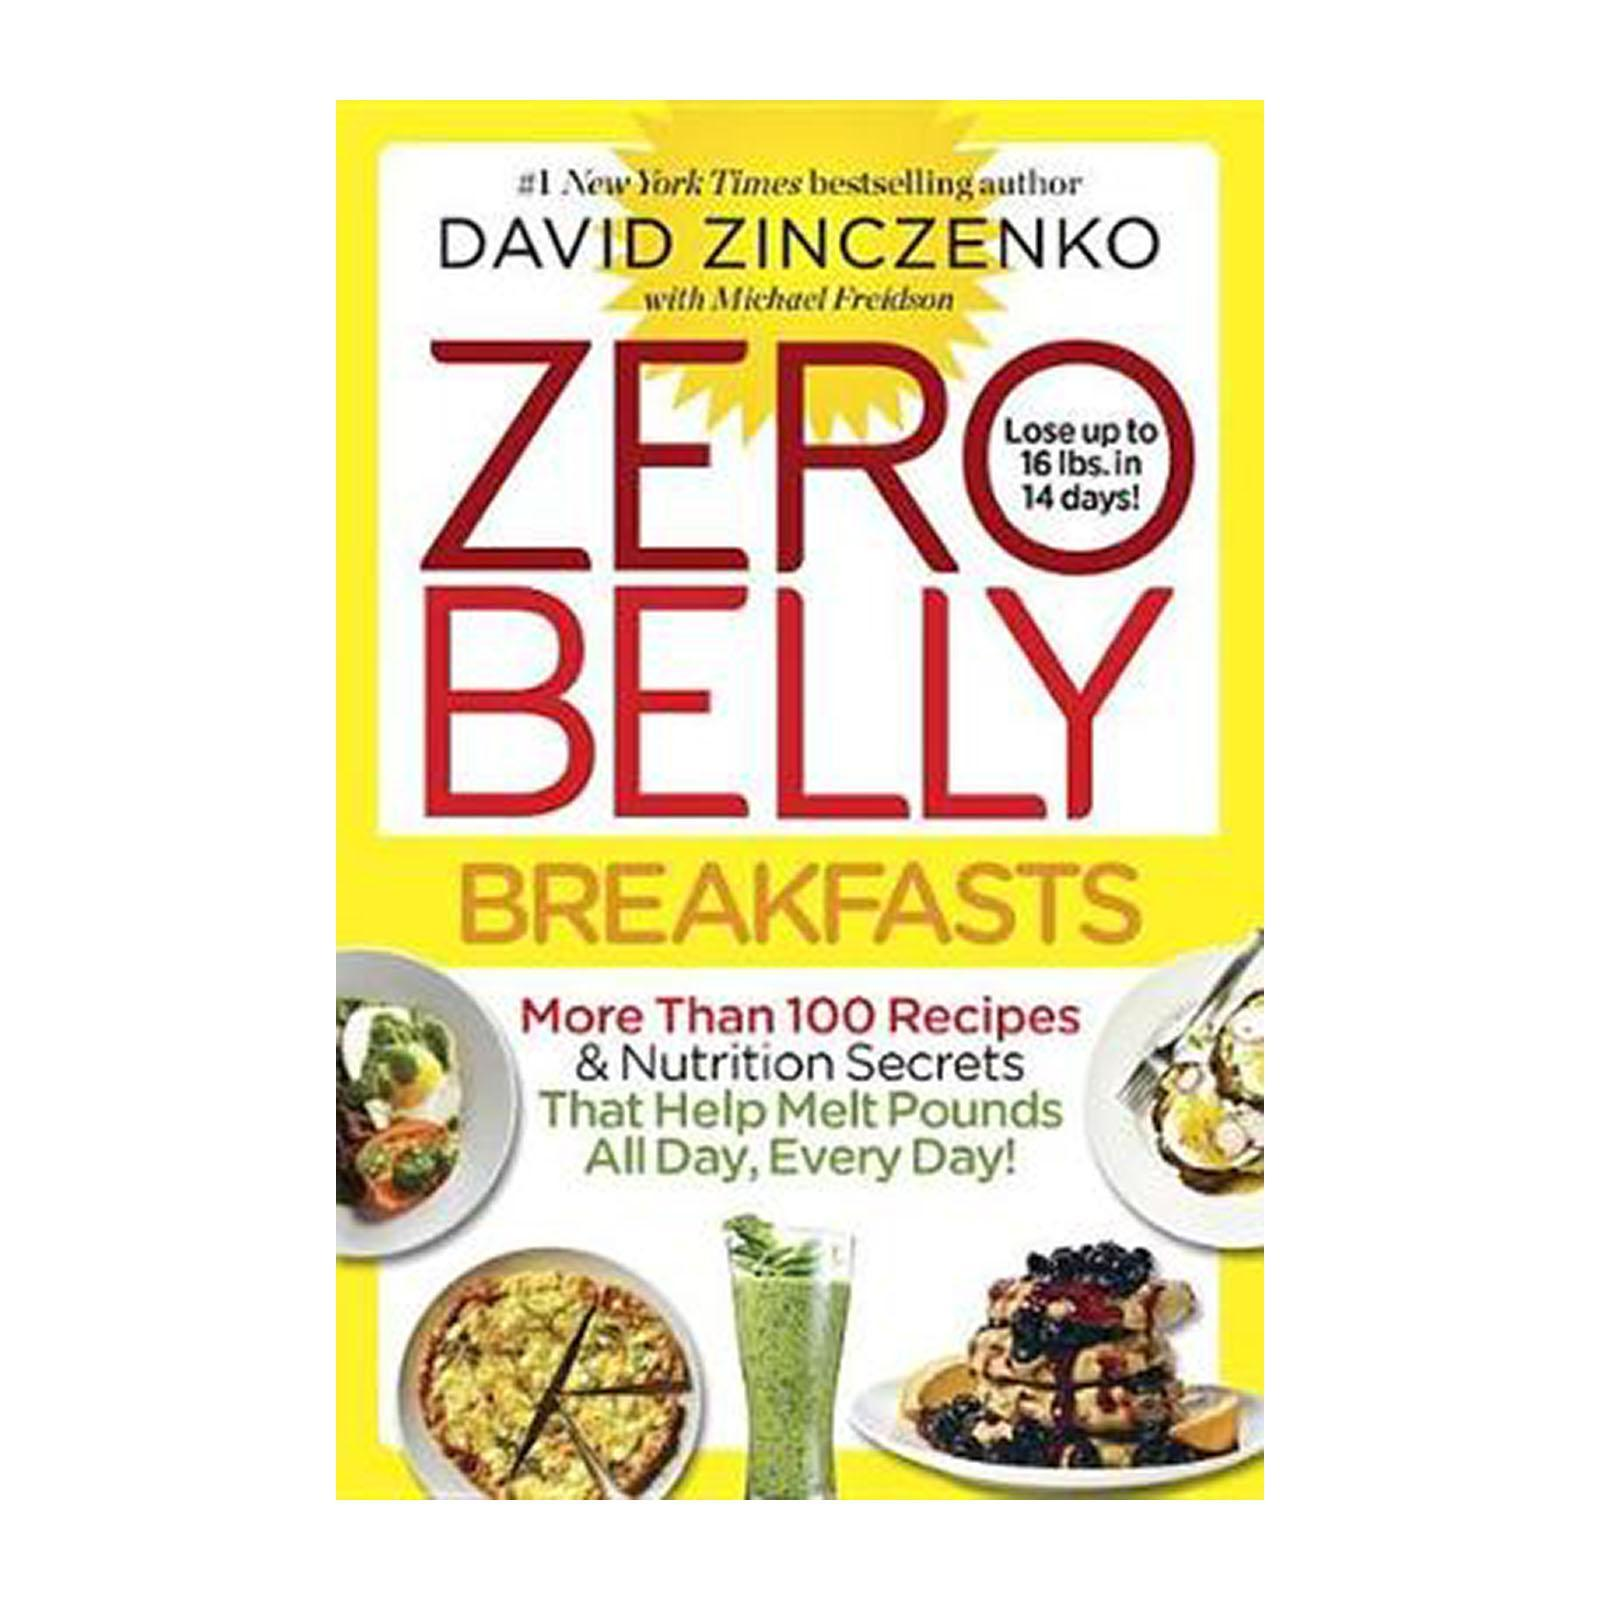 Zero Belly Breakfasts: More Than 100 Recipes And Nutrition Secrets That Help Melt Pounds All Day And Every Day! (Paperback)